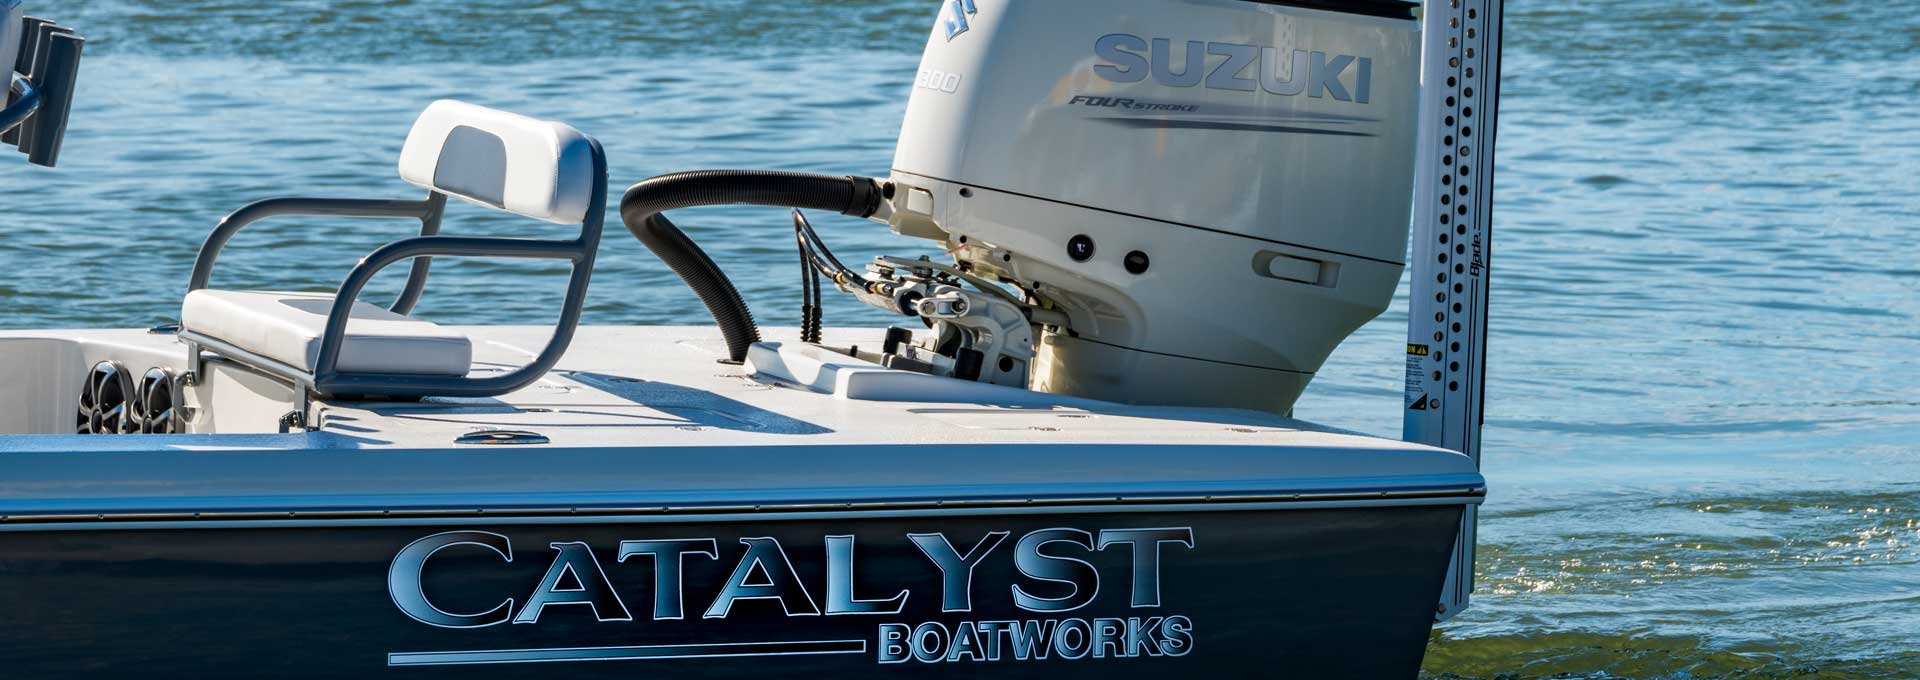 Catalyst Boatworks